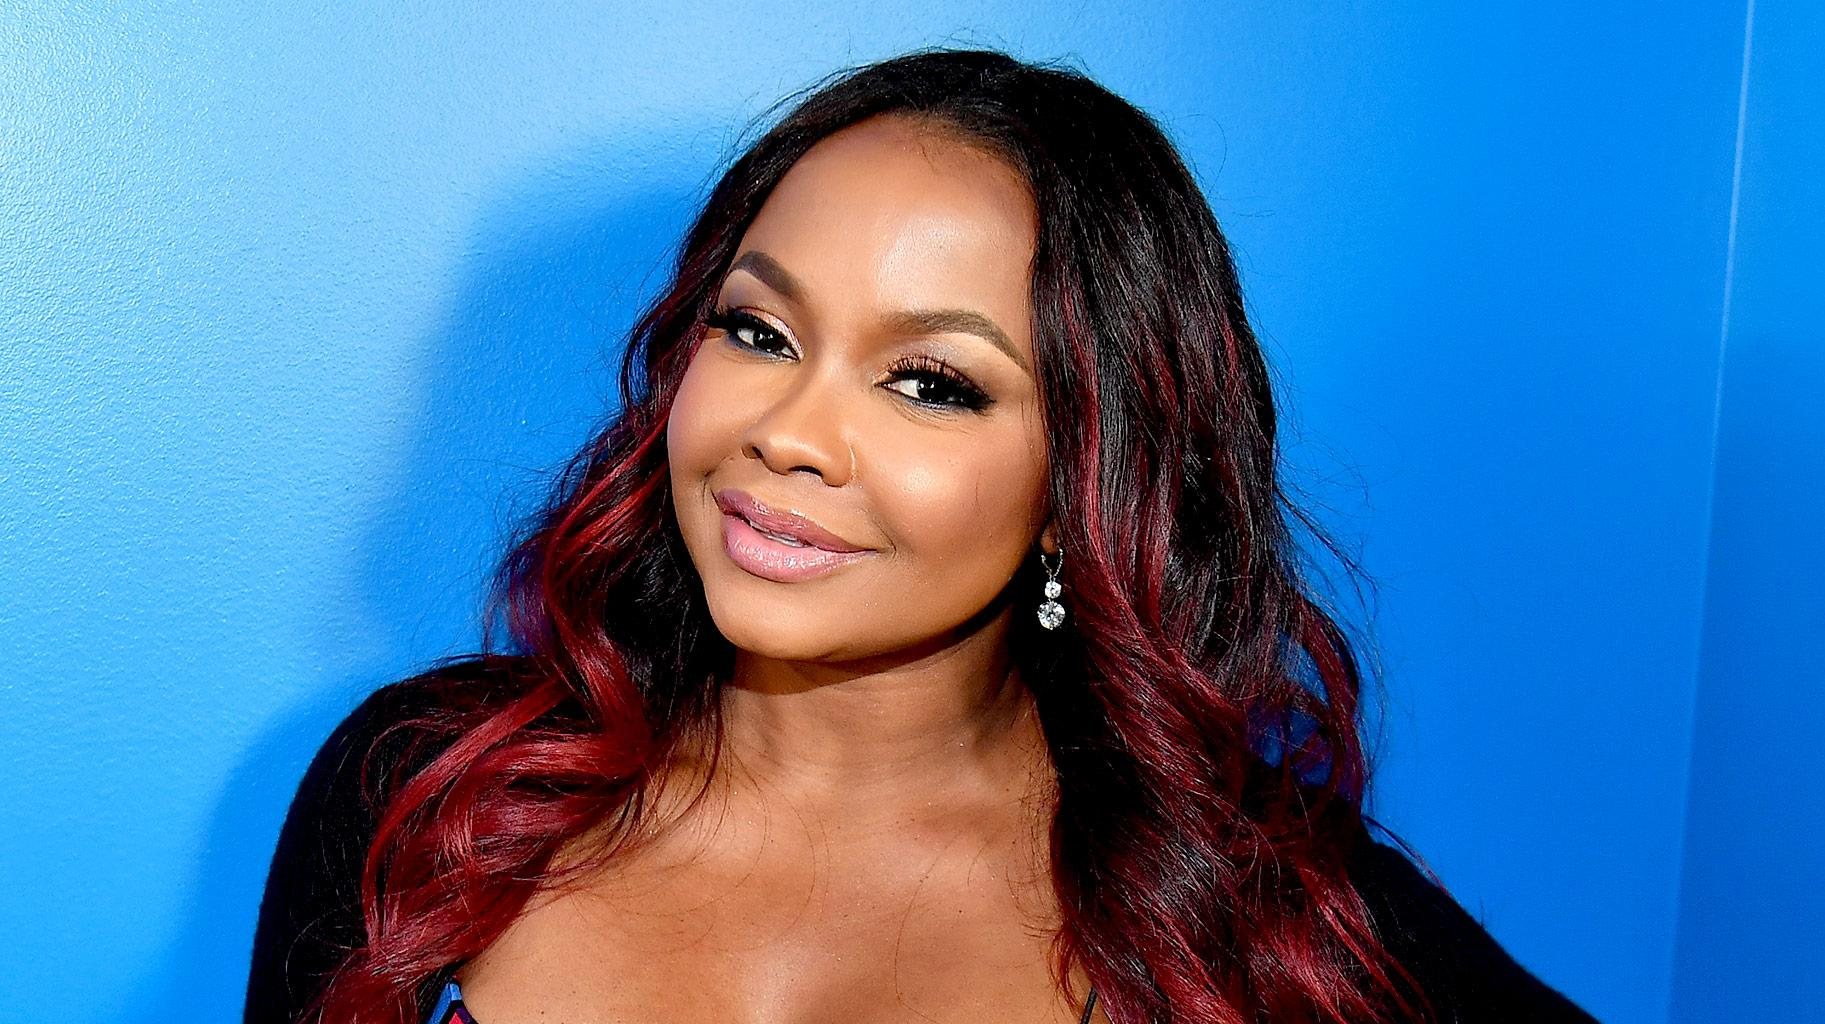 Phaedra Parks Gives A Shout Out To All Her Atlanta Sisters